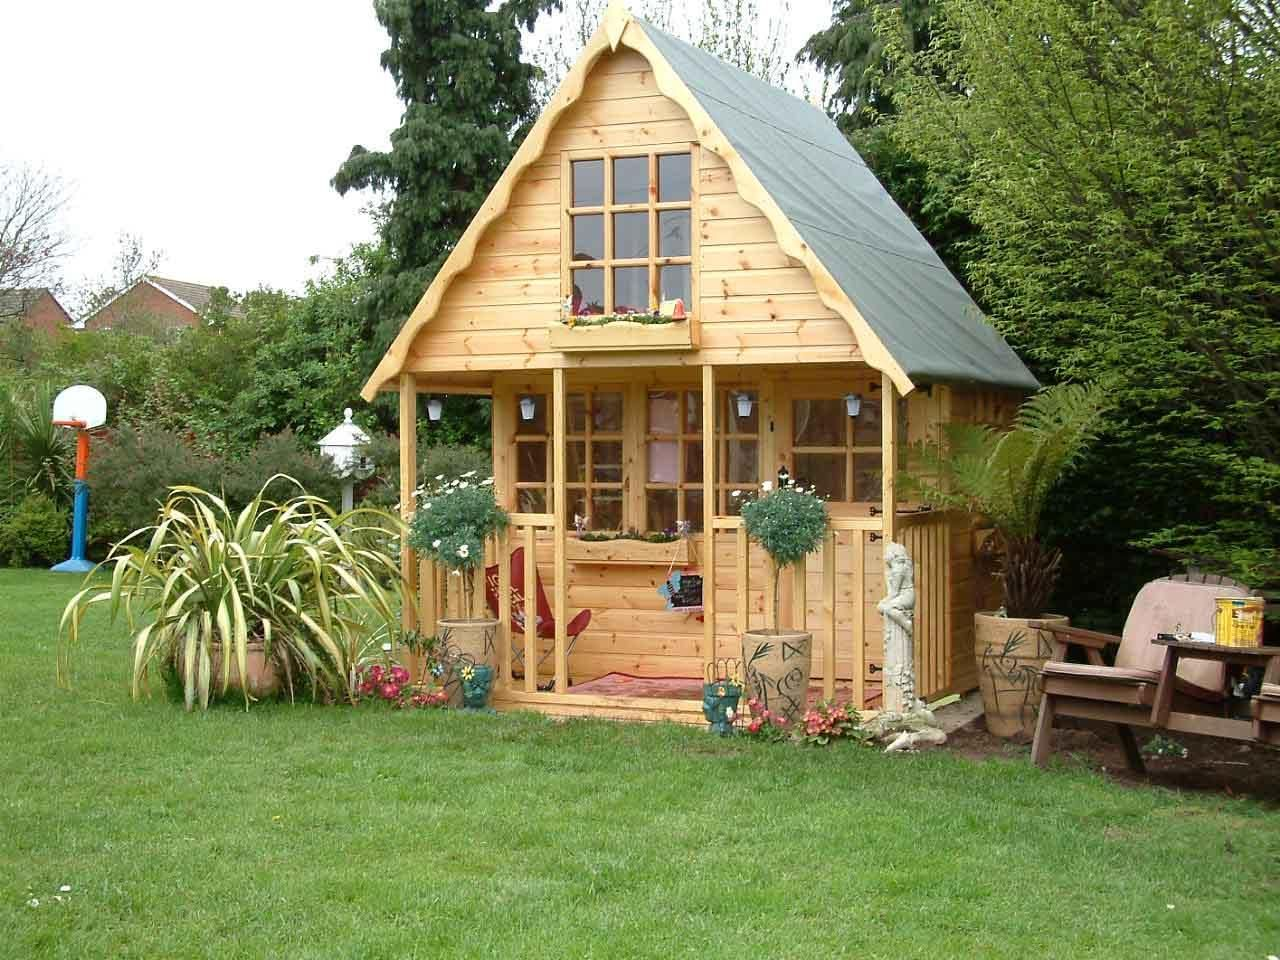 Outdoor playhouse for kids wood small playhouse designs for Wooden wendy house ideas